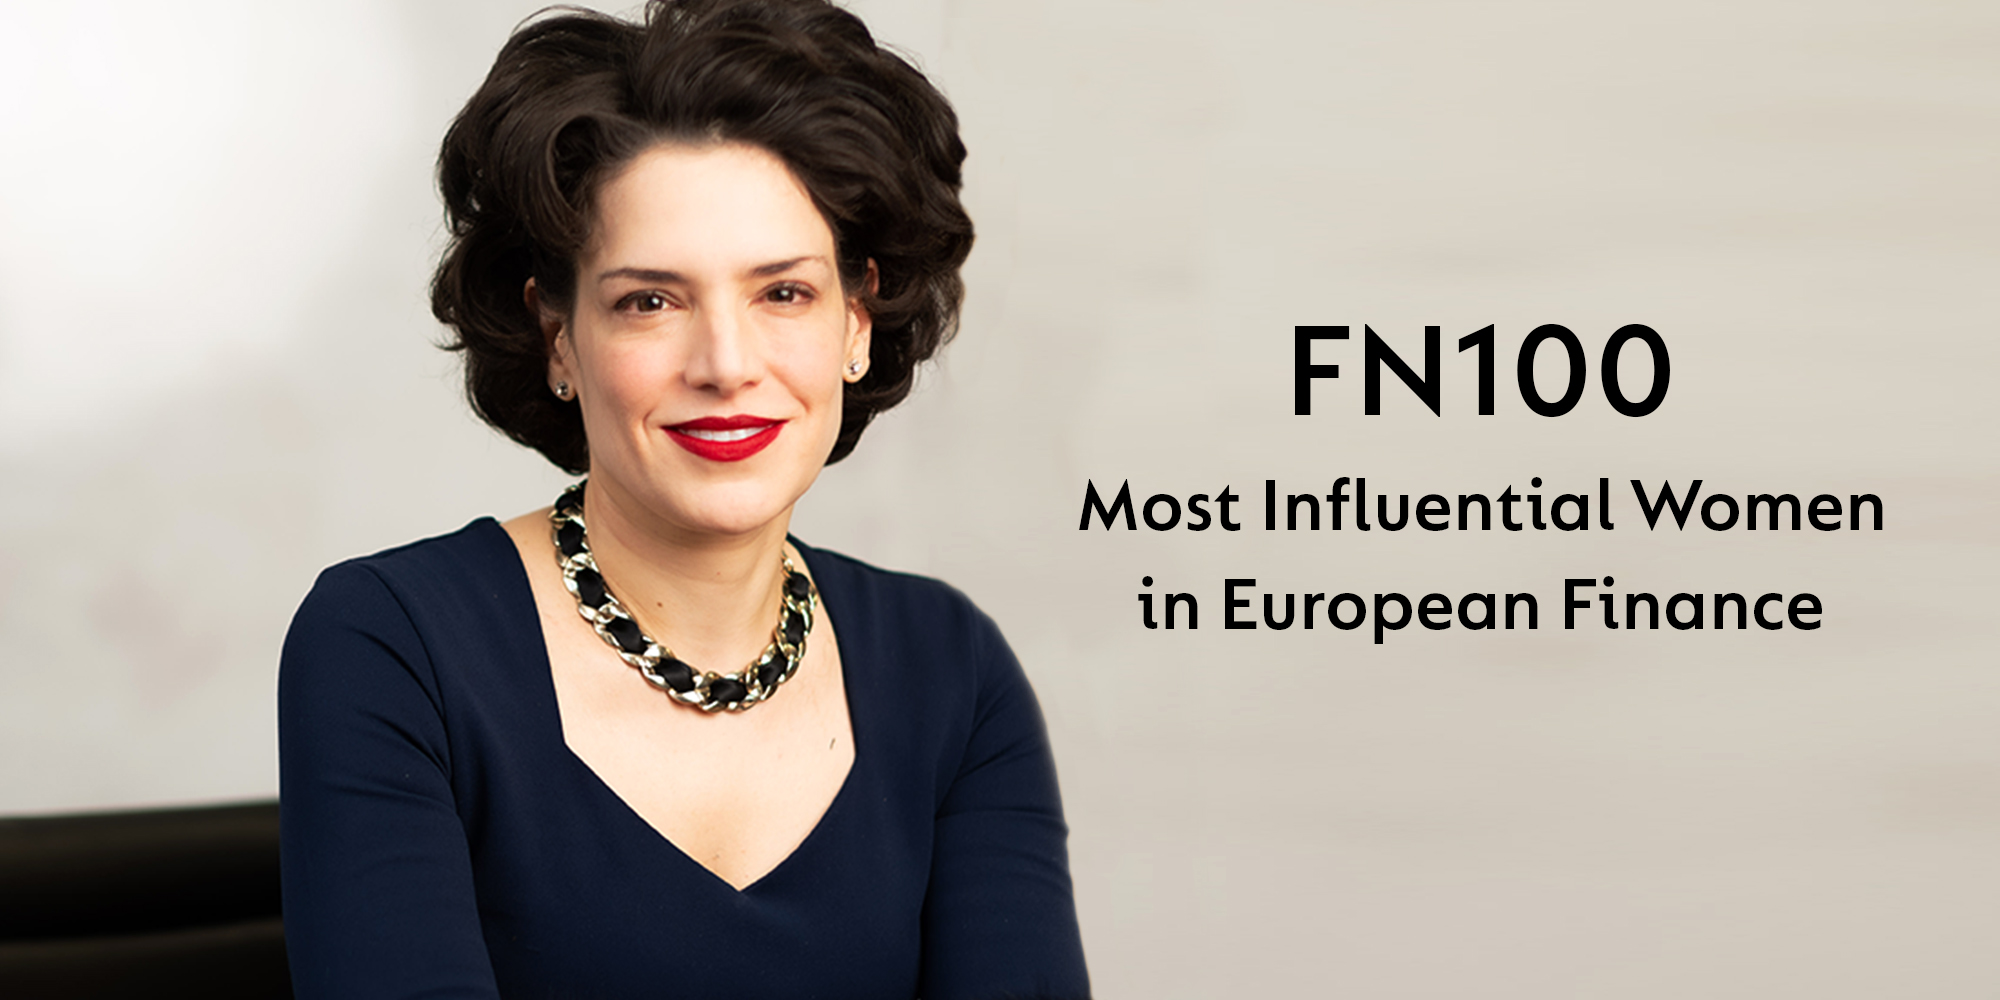 Joanna Nader, Group Head of Strategy, TP ICAP, was listed in the FN100 Most Influential Women in European Finance 2020